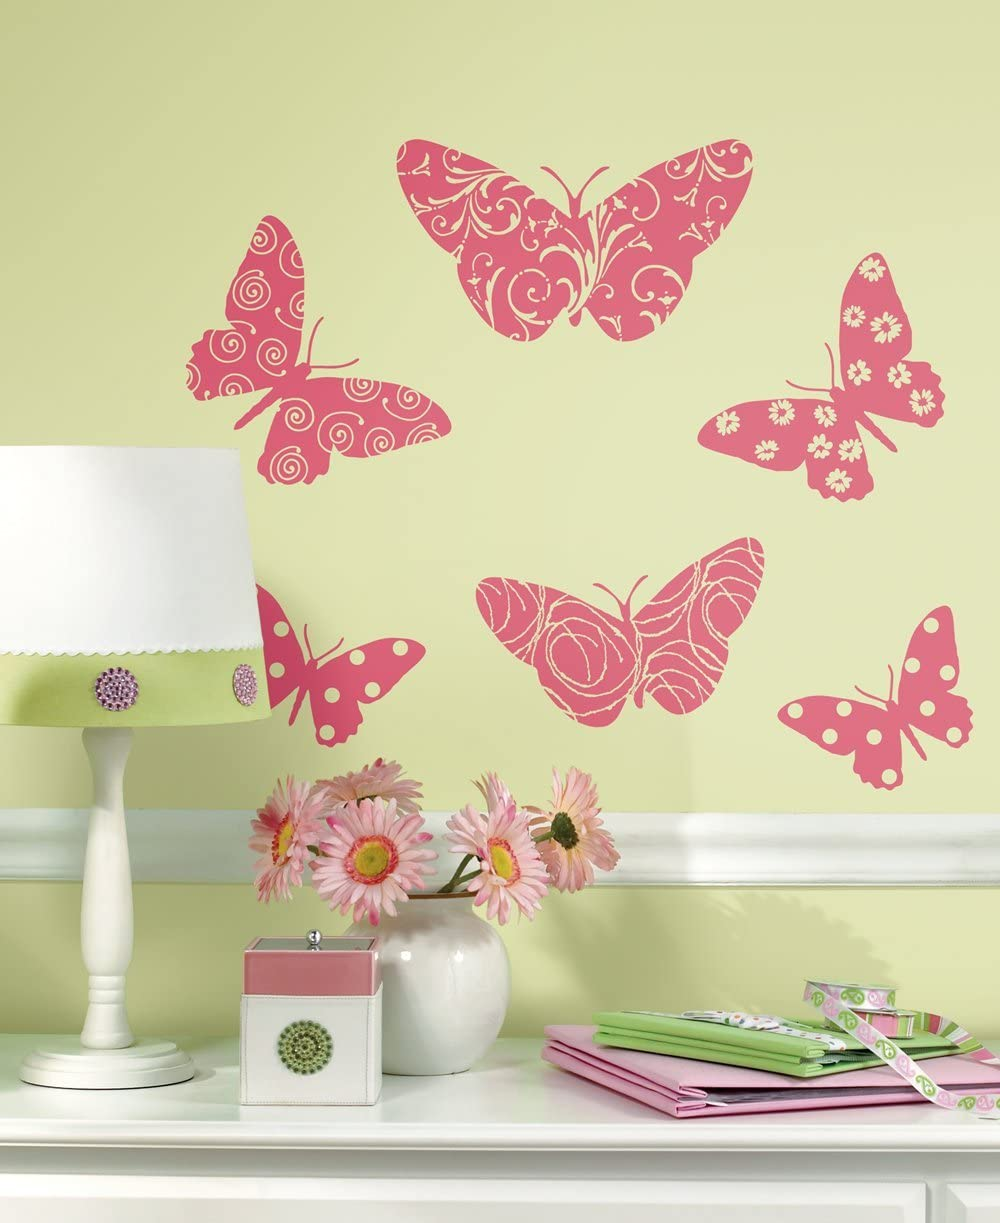 Roommates Butterfly Decals Flock Wall Decals